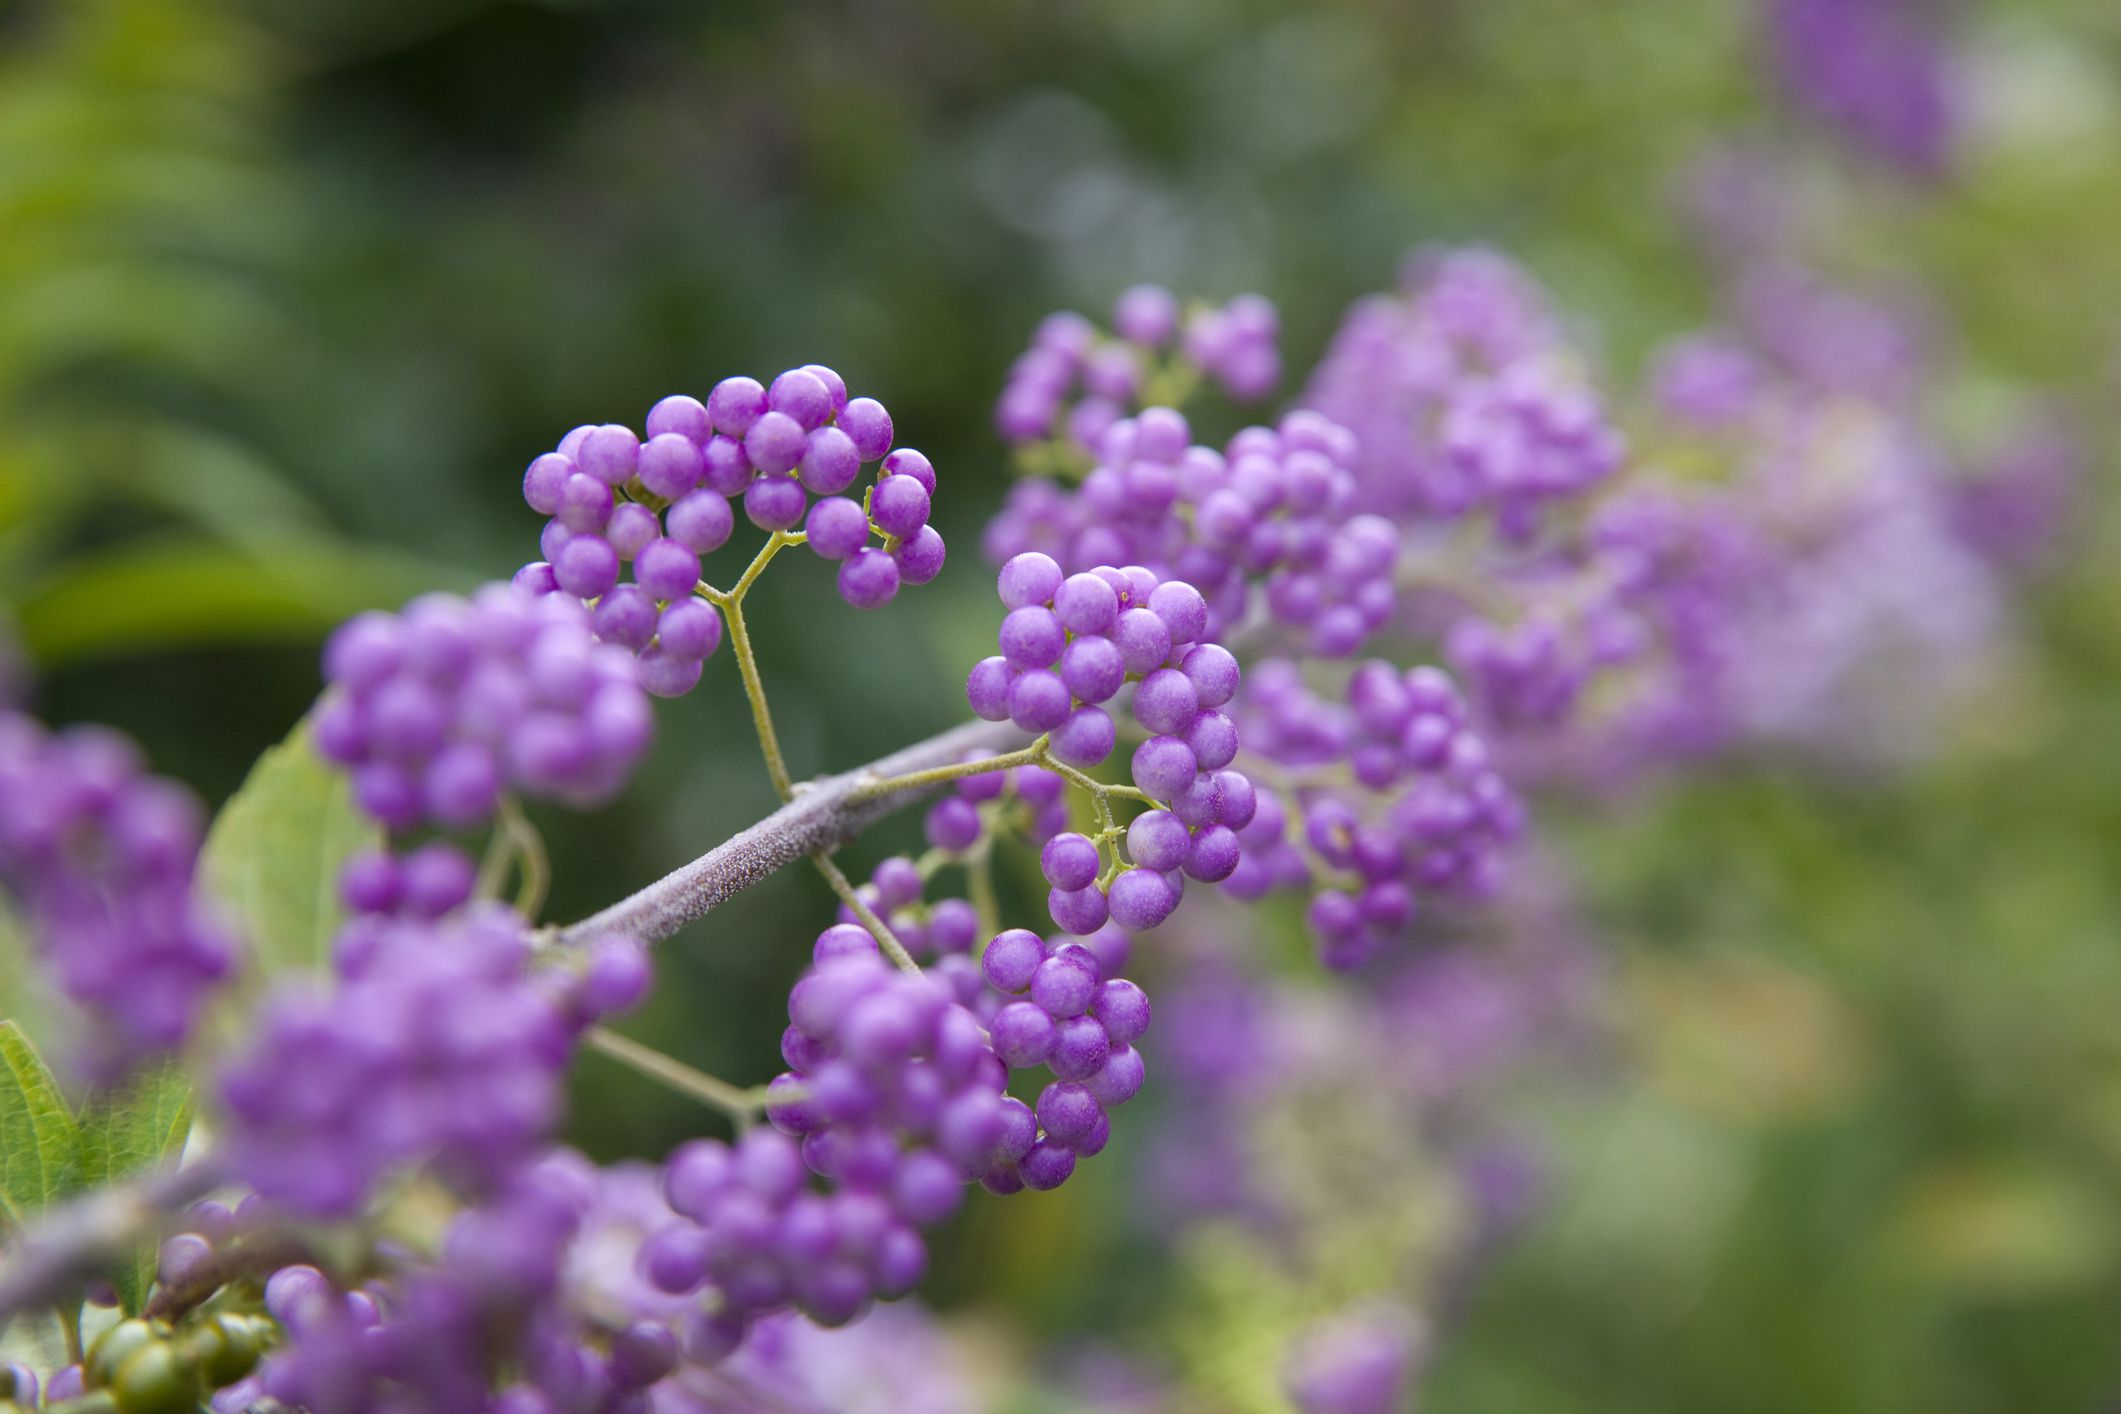 How To Grow Purple Beautyberry Shrubs In Your Yard